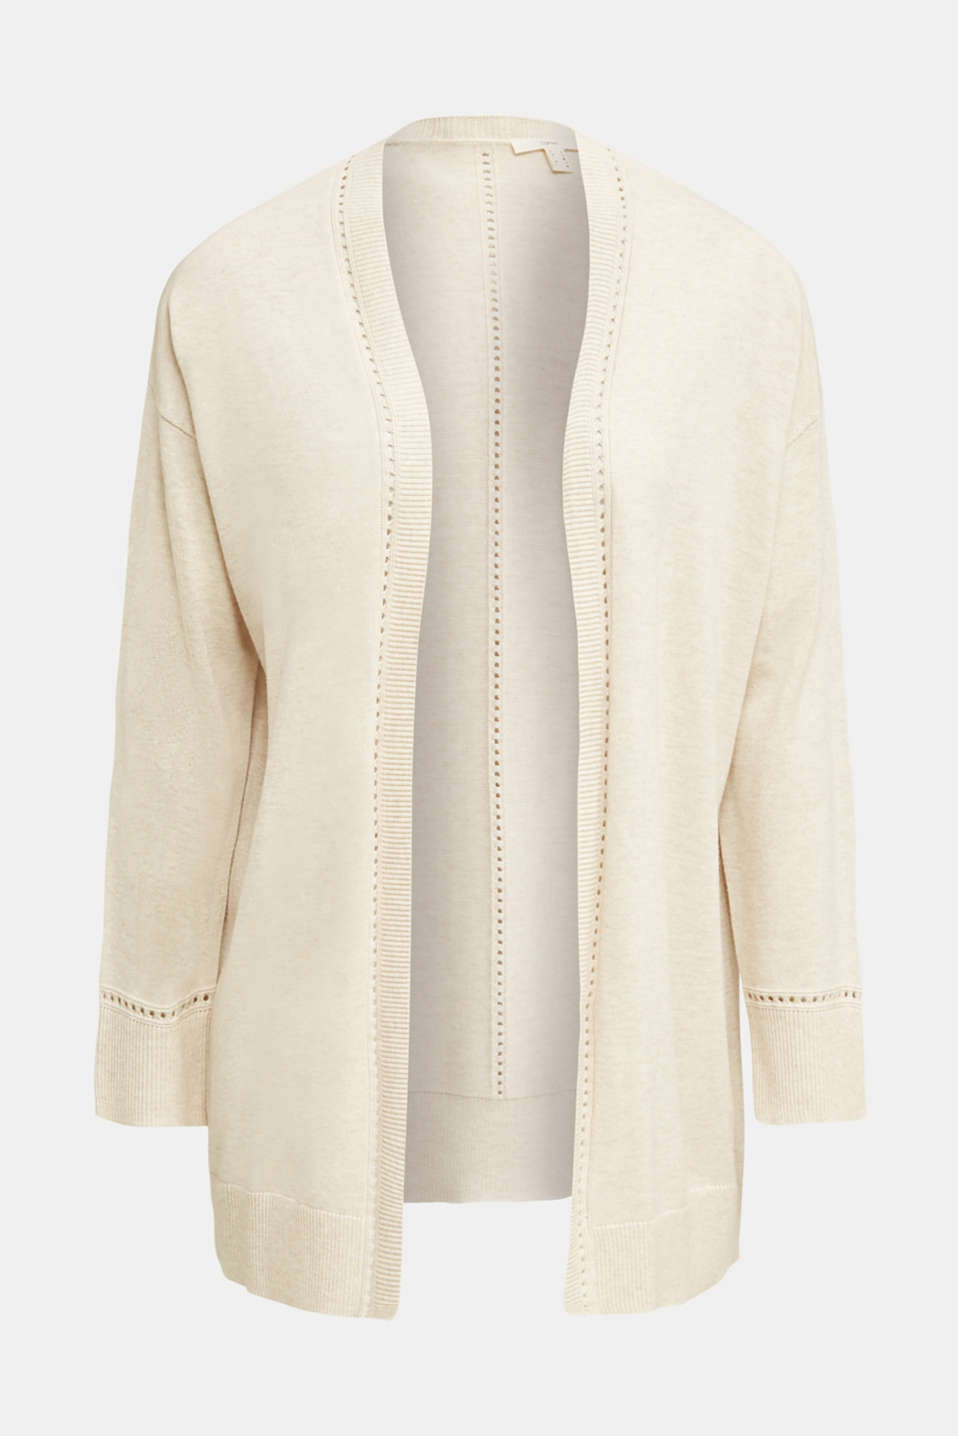 Cardigan with open-work pattern details, SAND, detail image number 6